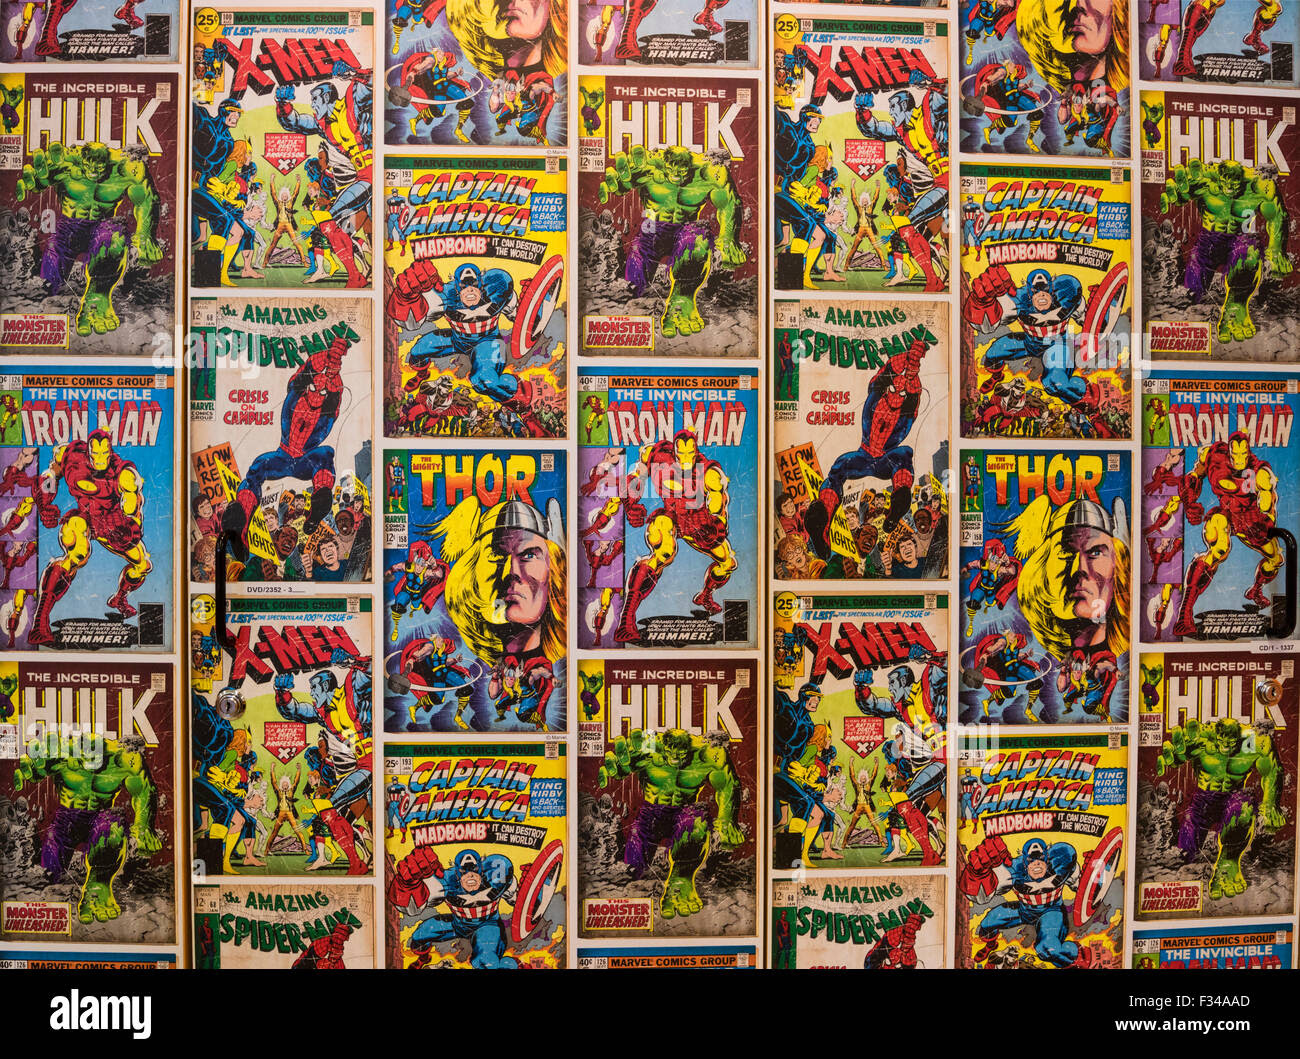 Pats Wallpaper Livermore Falls Maine Wallpaper Live Captain America Wall Ppx